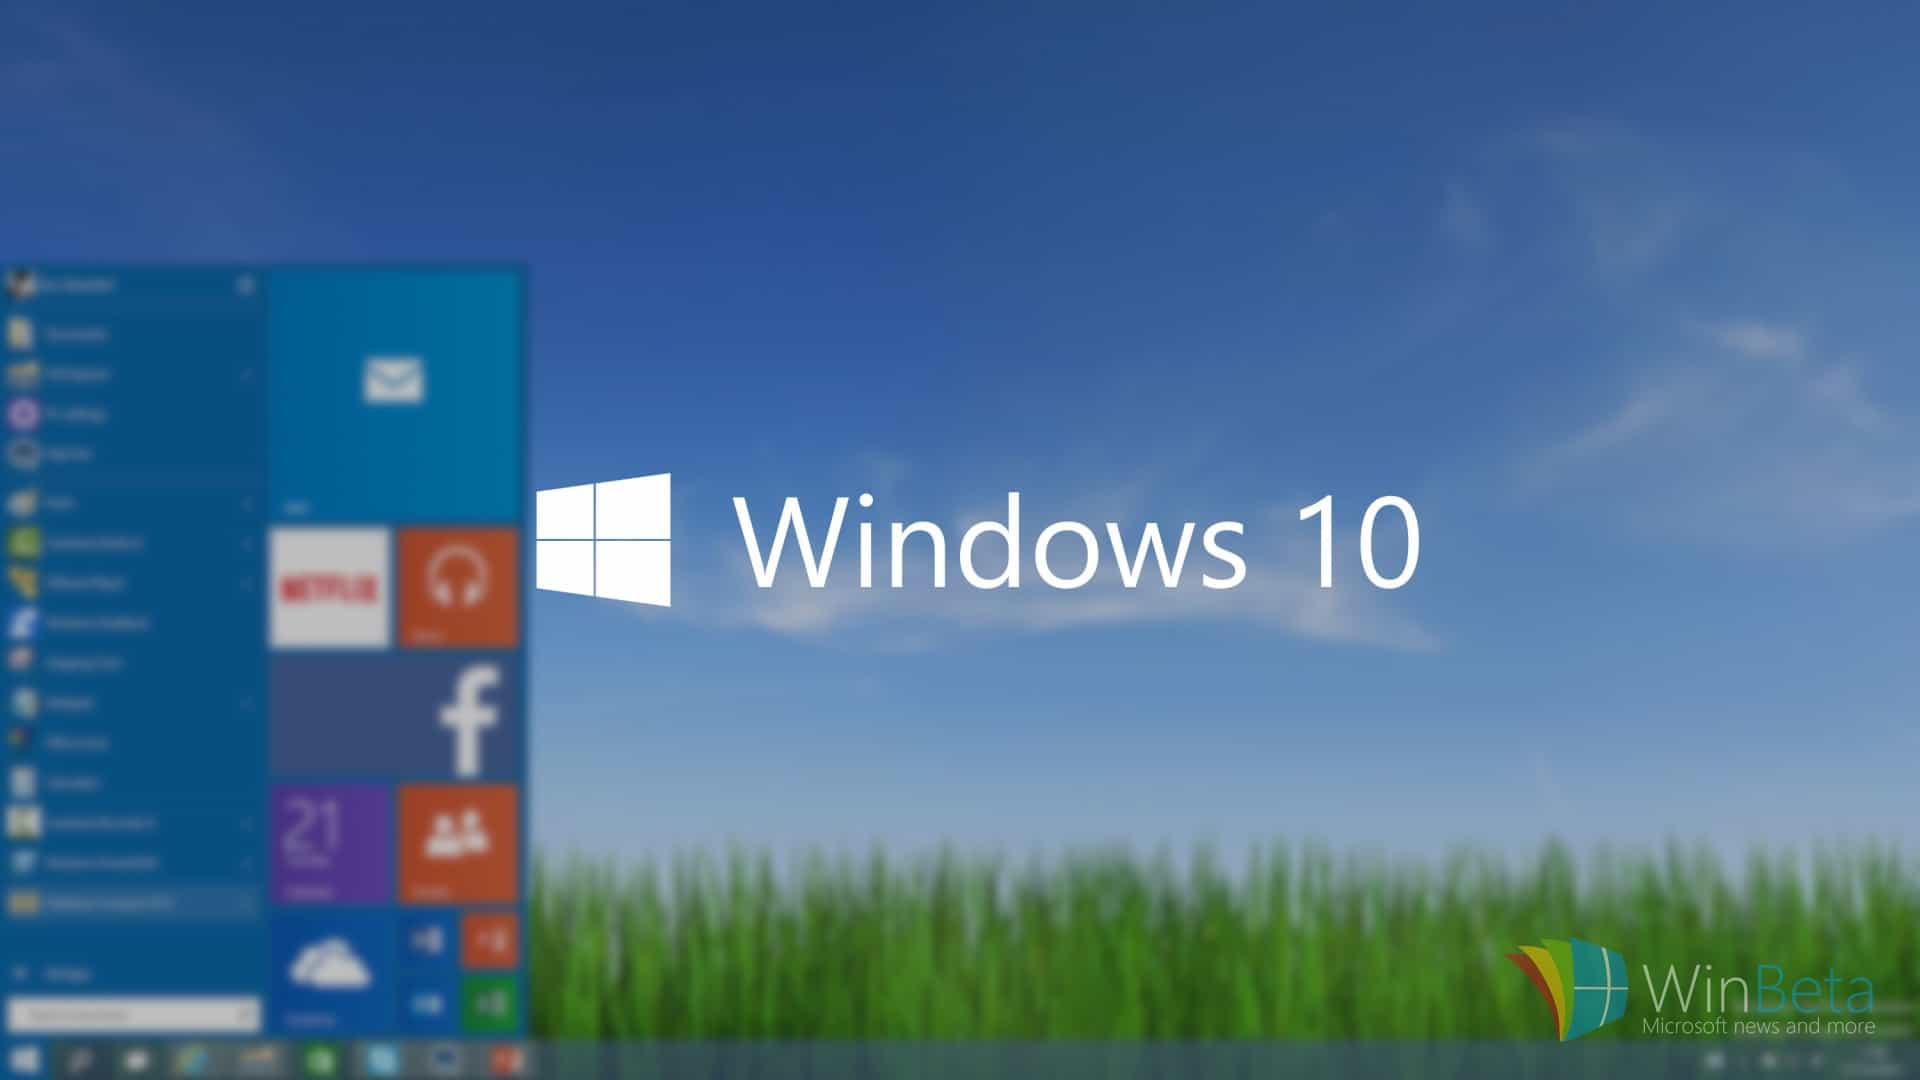 Should I upgrade to windows 10? Some advanced features to check out